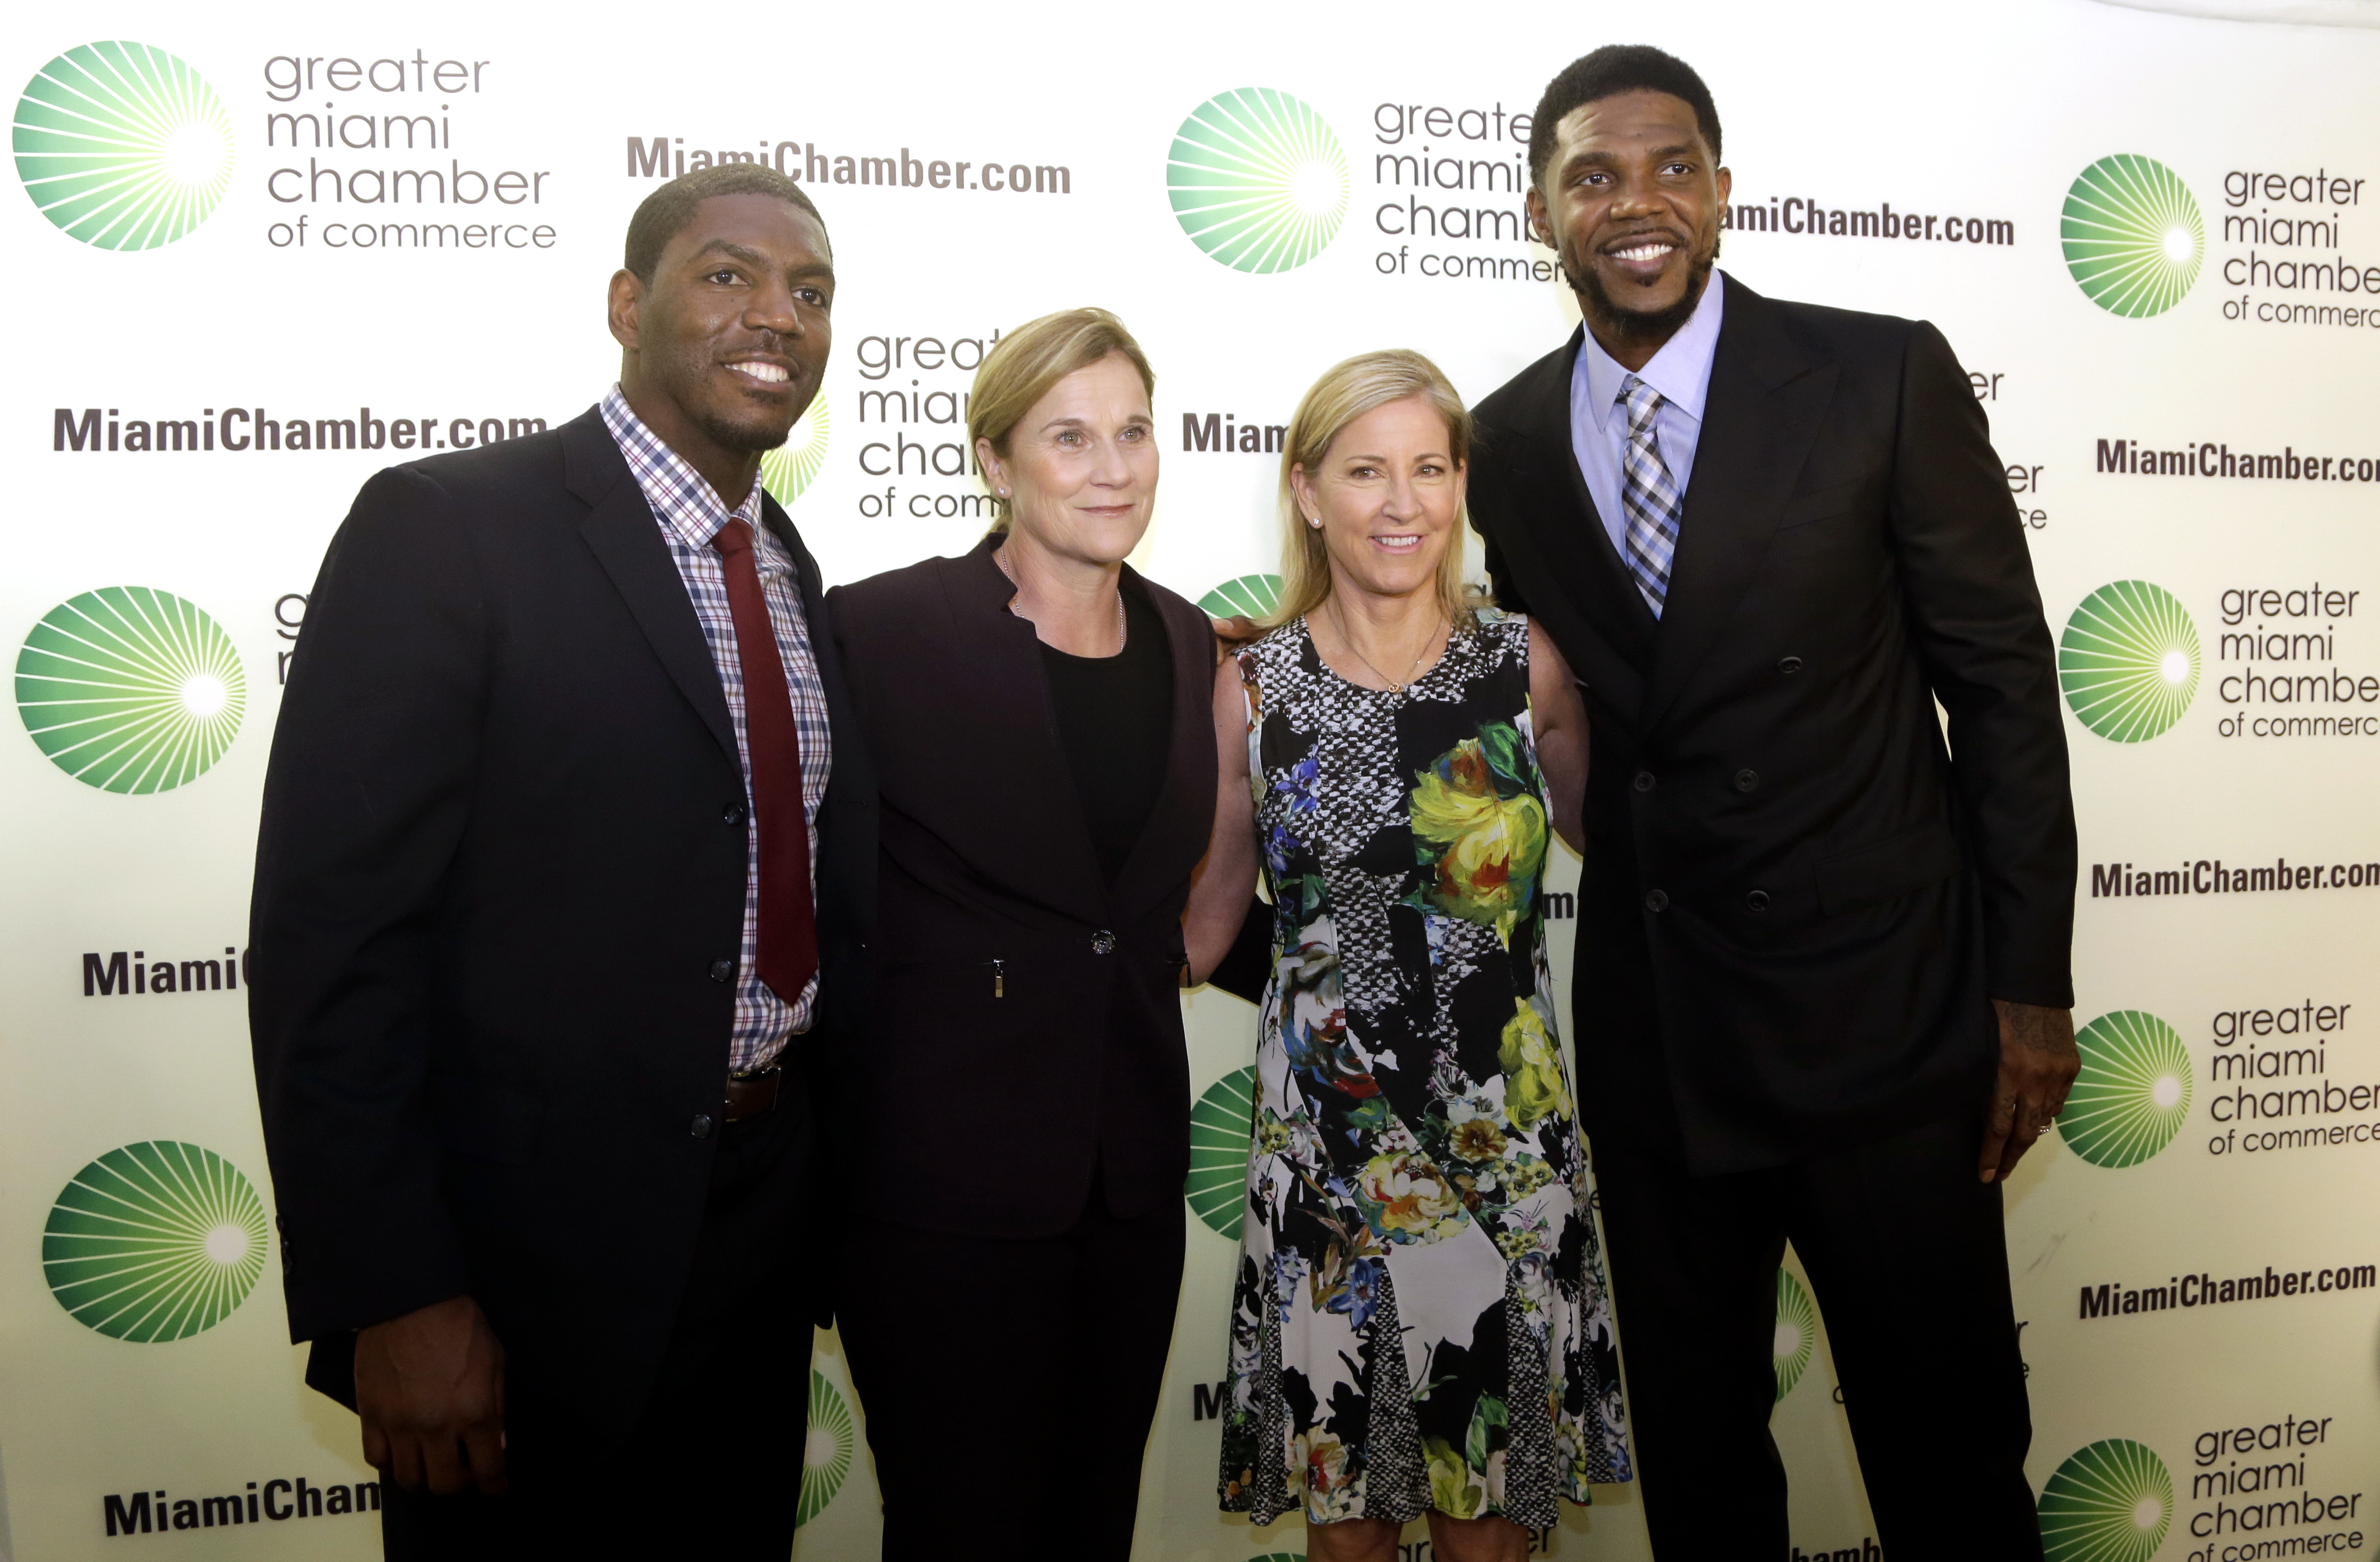 Greater Miami Chamber of Commerce Sports Hall of Champions inductees, from left, Jonathan Vilma, former NFL football player for the New Orleans Saints;  Jill Ellis, coach of the U.S. women's soccer team; former tennis player Chris Evert, and Miami Heat pl